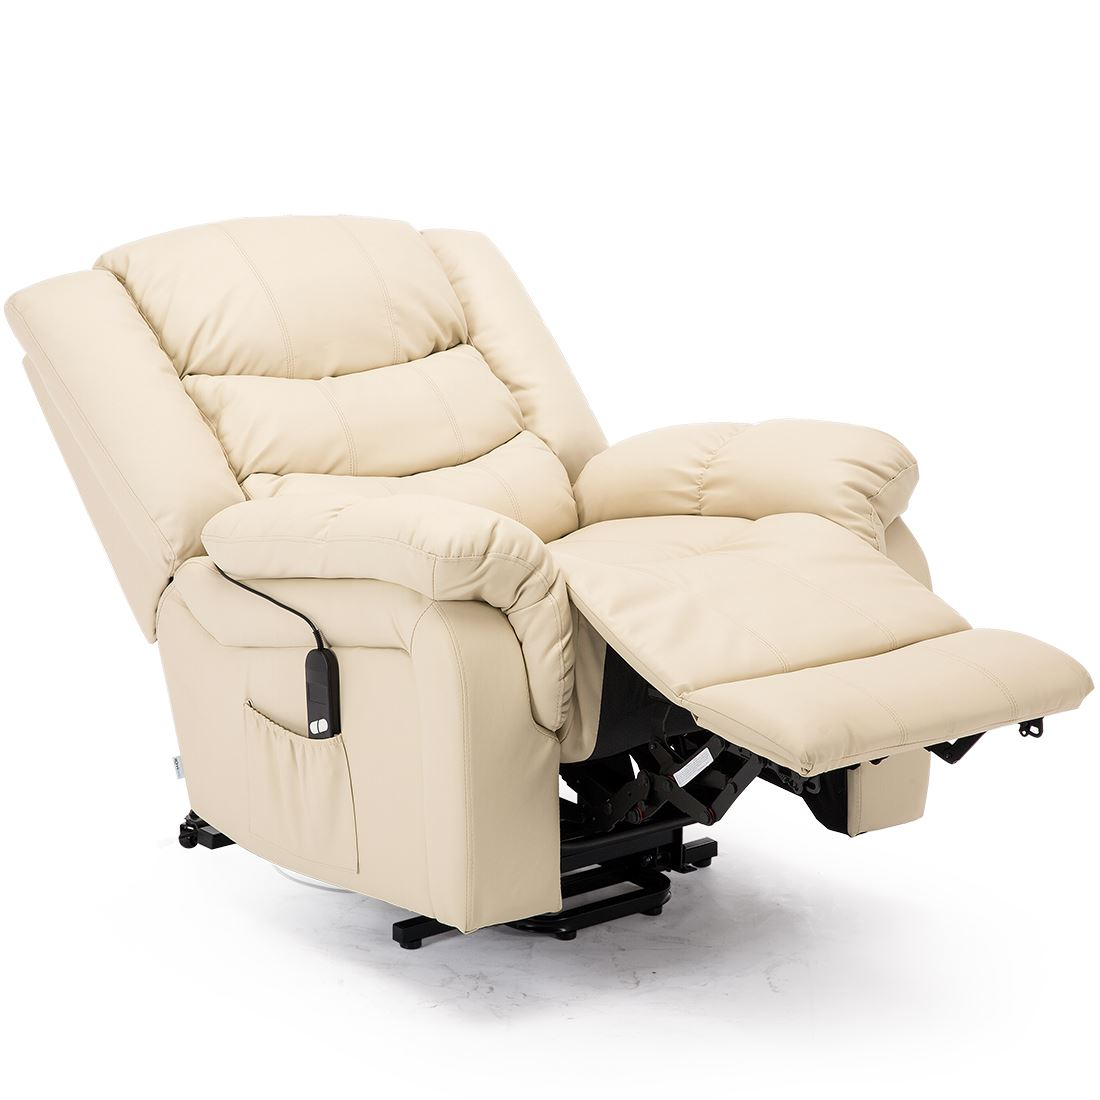 SEATTLE-ELECTRIC-RISE-REAL-LEATHER-RECLINER-ARMCHAIR-SOFA-HOME-LOUNGE-CHAIR thumbnail 25